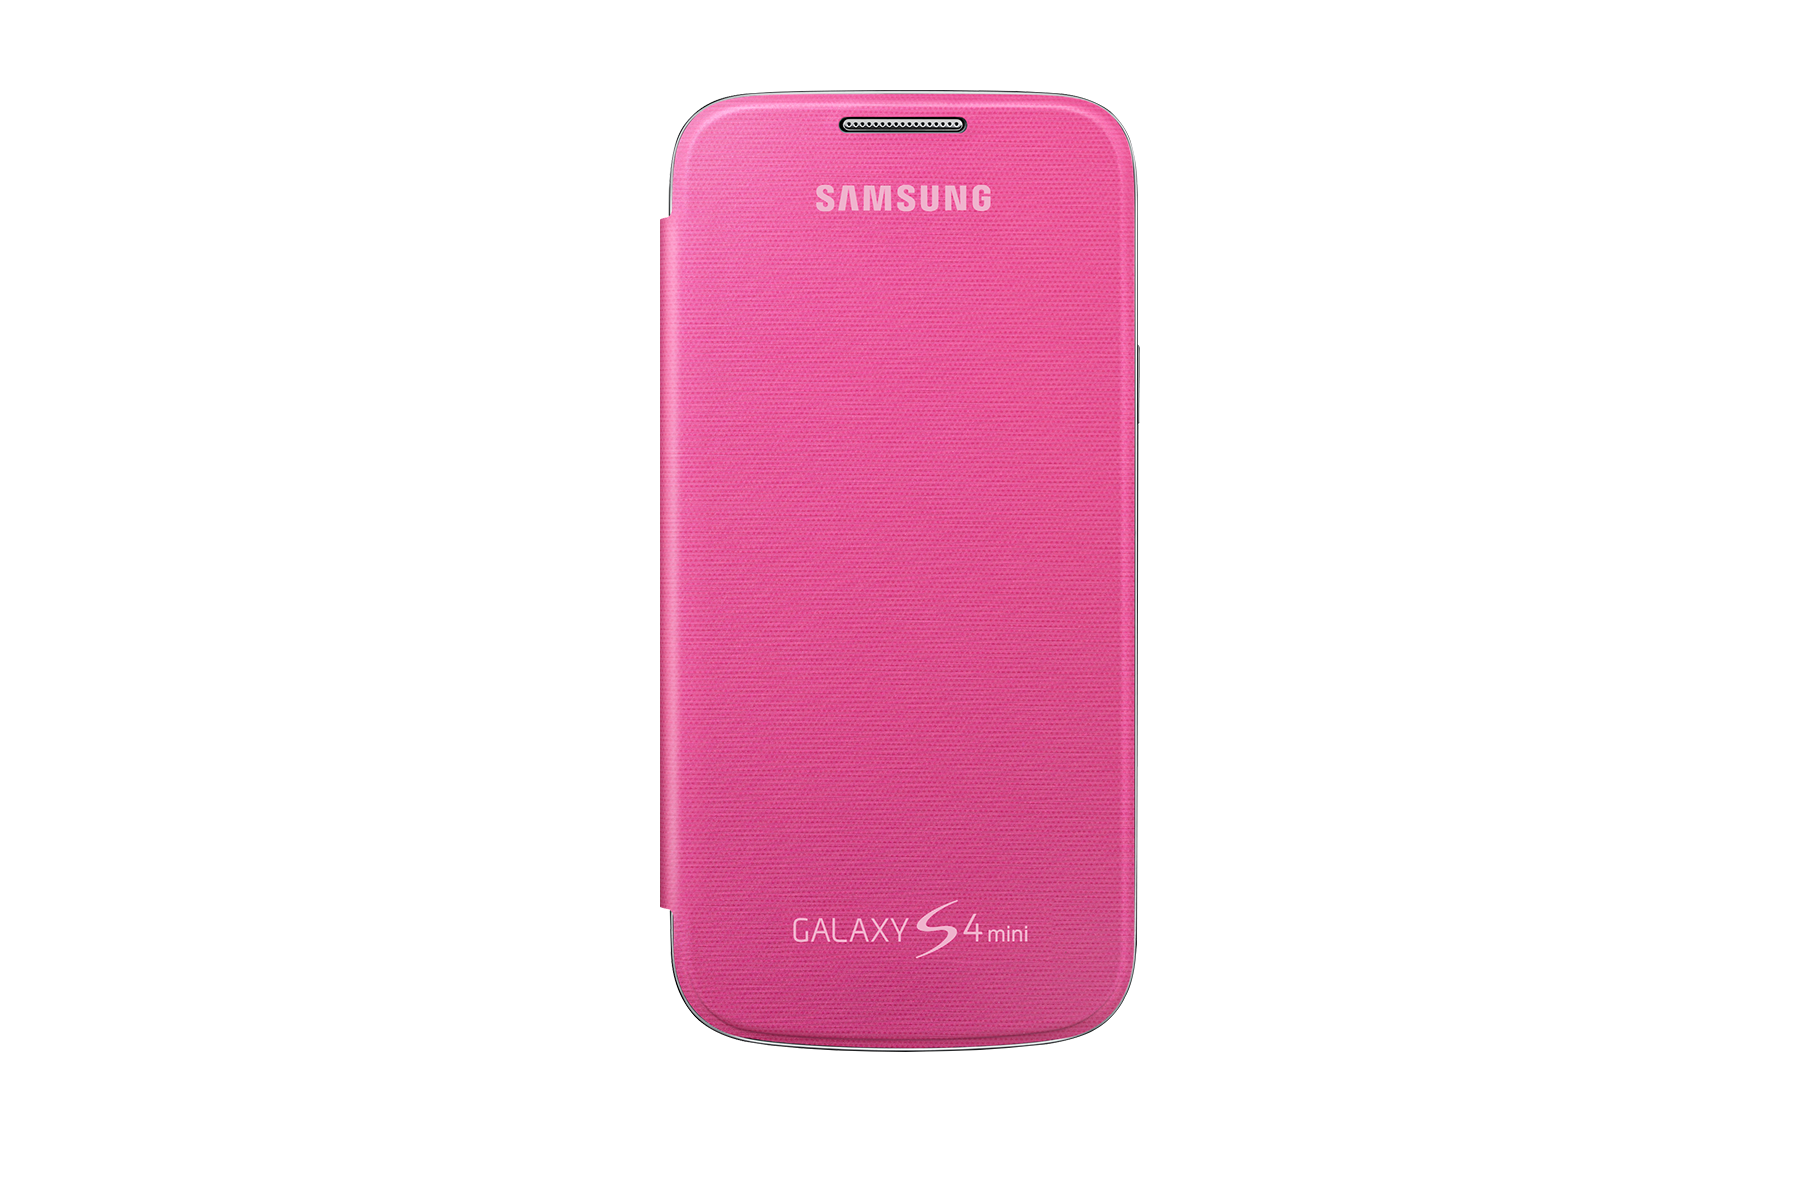 Flip Cover (Galaxy S4 mini)